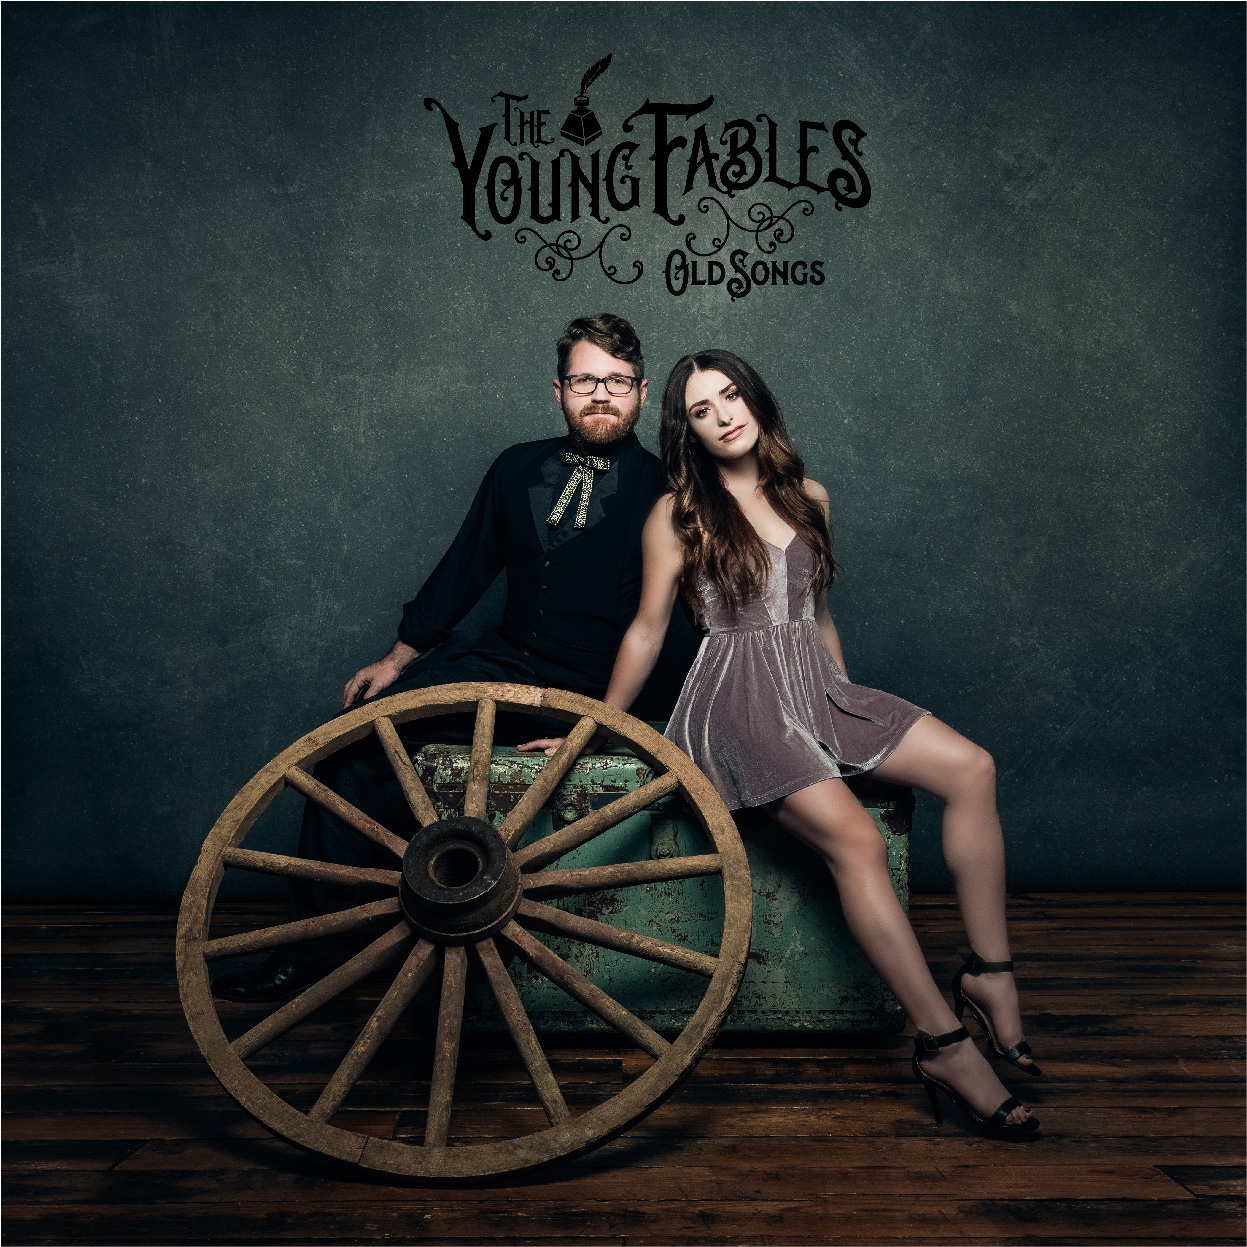 The Youngins Fan Club - The Young Fables